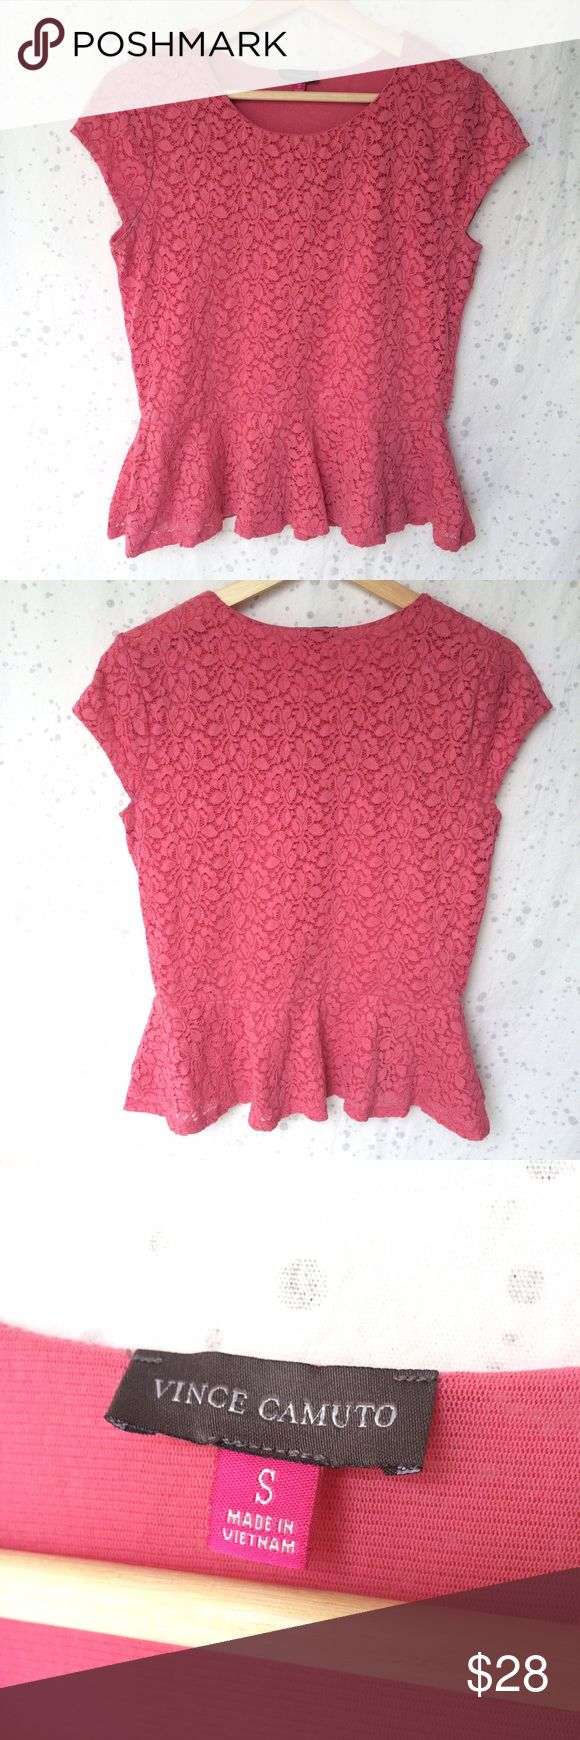 """Vince Camuto Lace Peplum Top Pink Floral Small Vince Camuto lace peplum top. Size small. Perfect for spring/summer! May show wear and some fuzziness/pilling. 18.5"""" across chest and 22.5"""" long from shoulder. Vince Camuto Tops"""